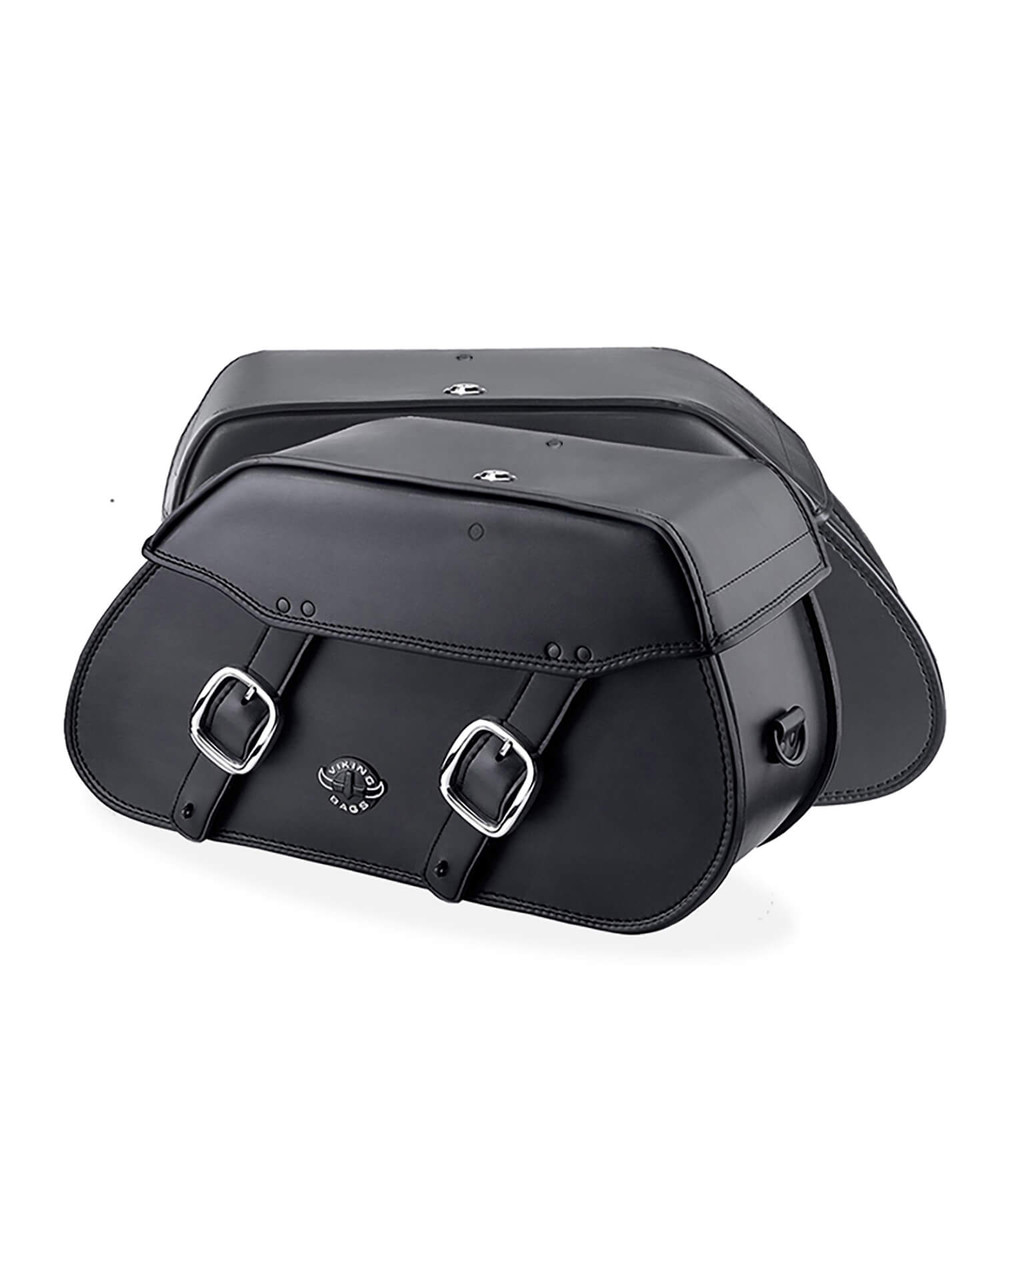 indian-scout-sixty-pinnacle-motorcycle-saddlebags Both Bags View